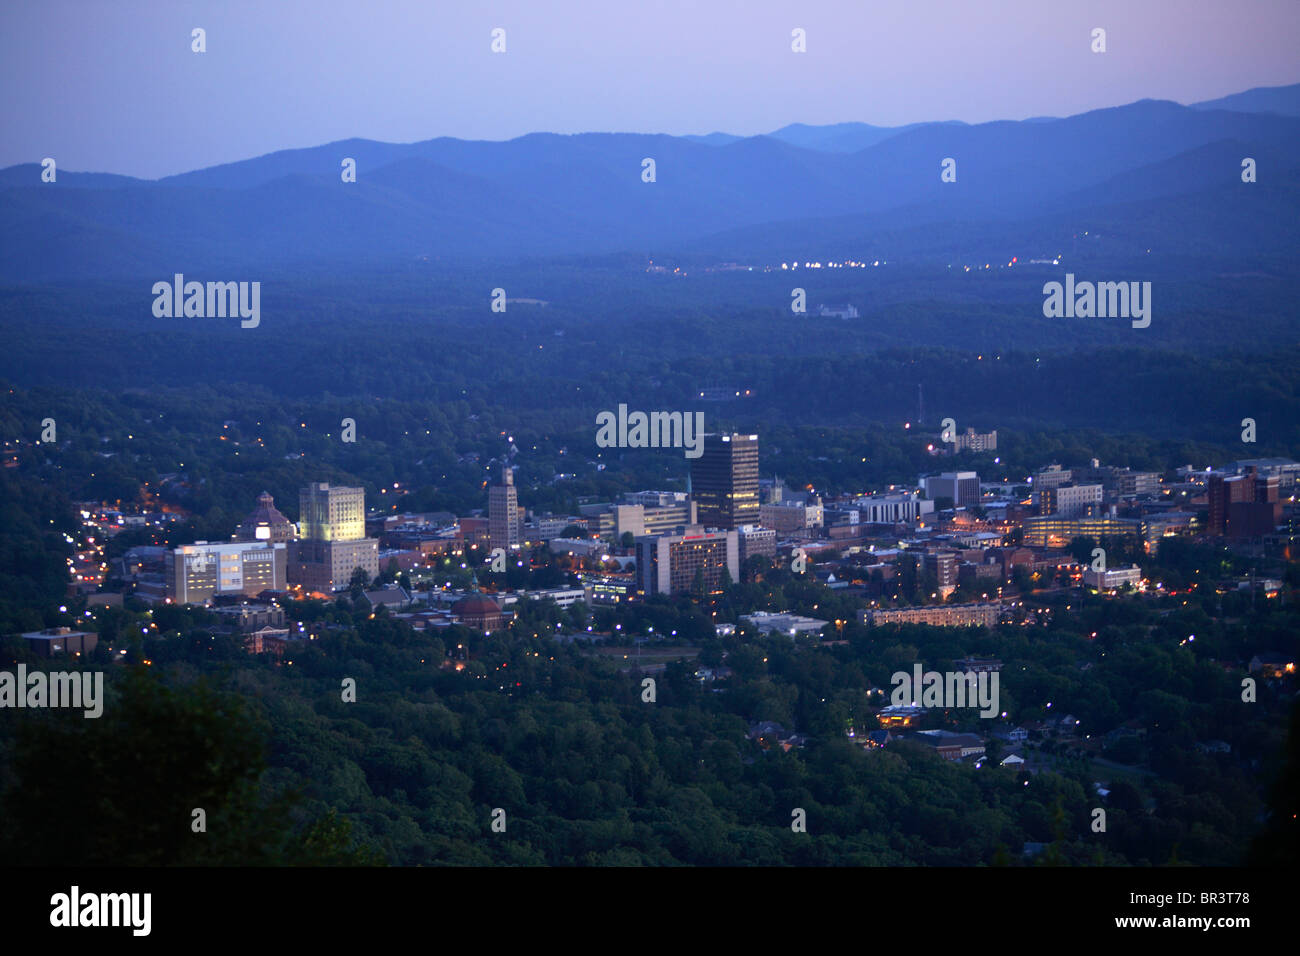 Twilight view of the heart of downtown Asheville, NC as seen from town mountain. Stock Photo